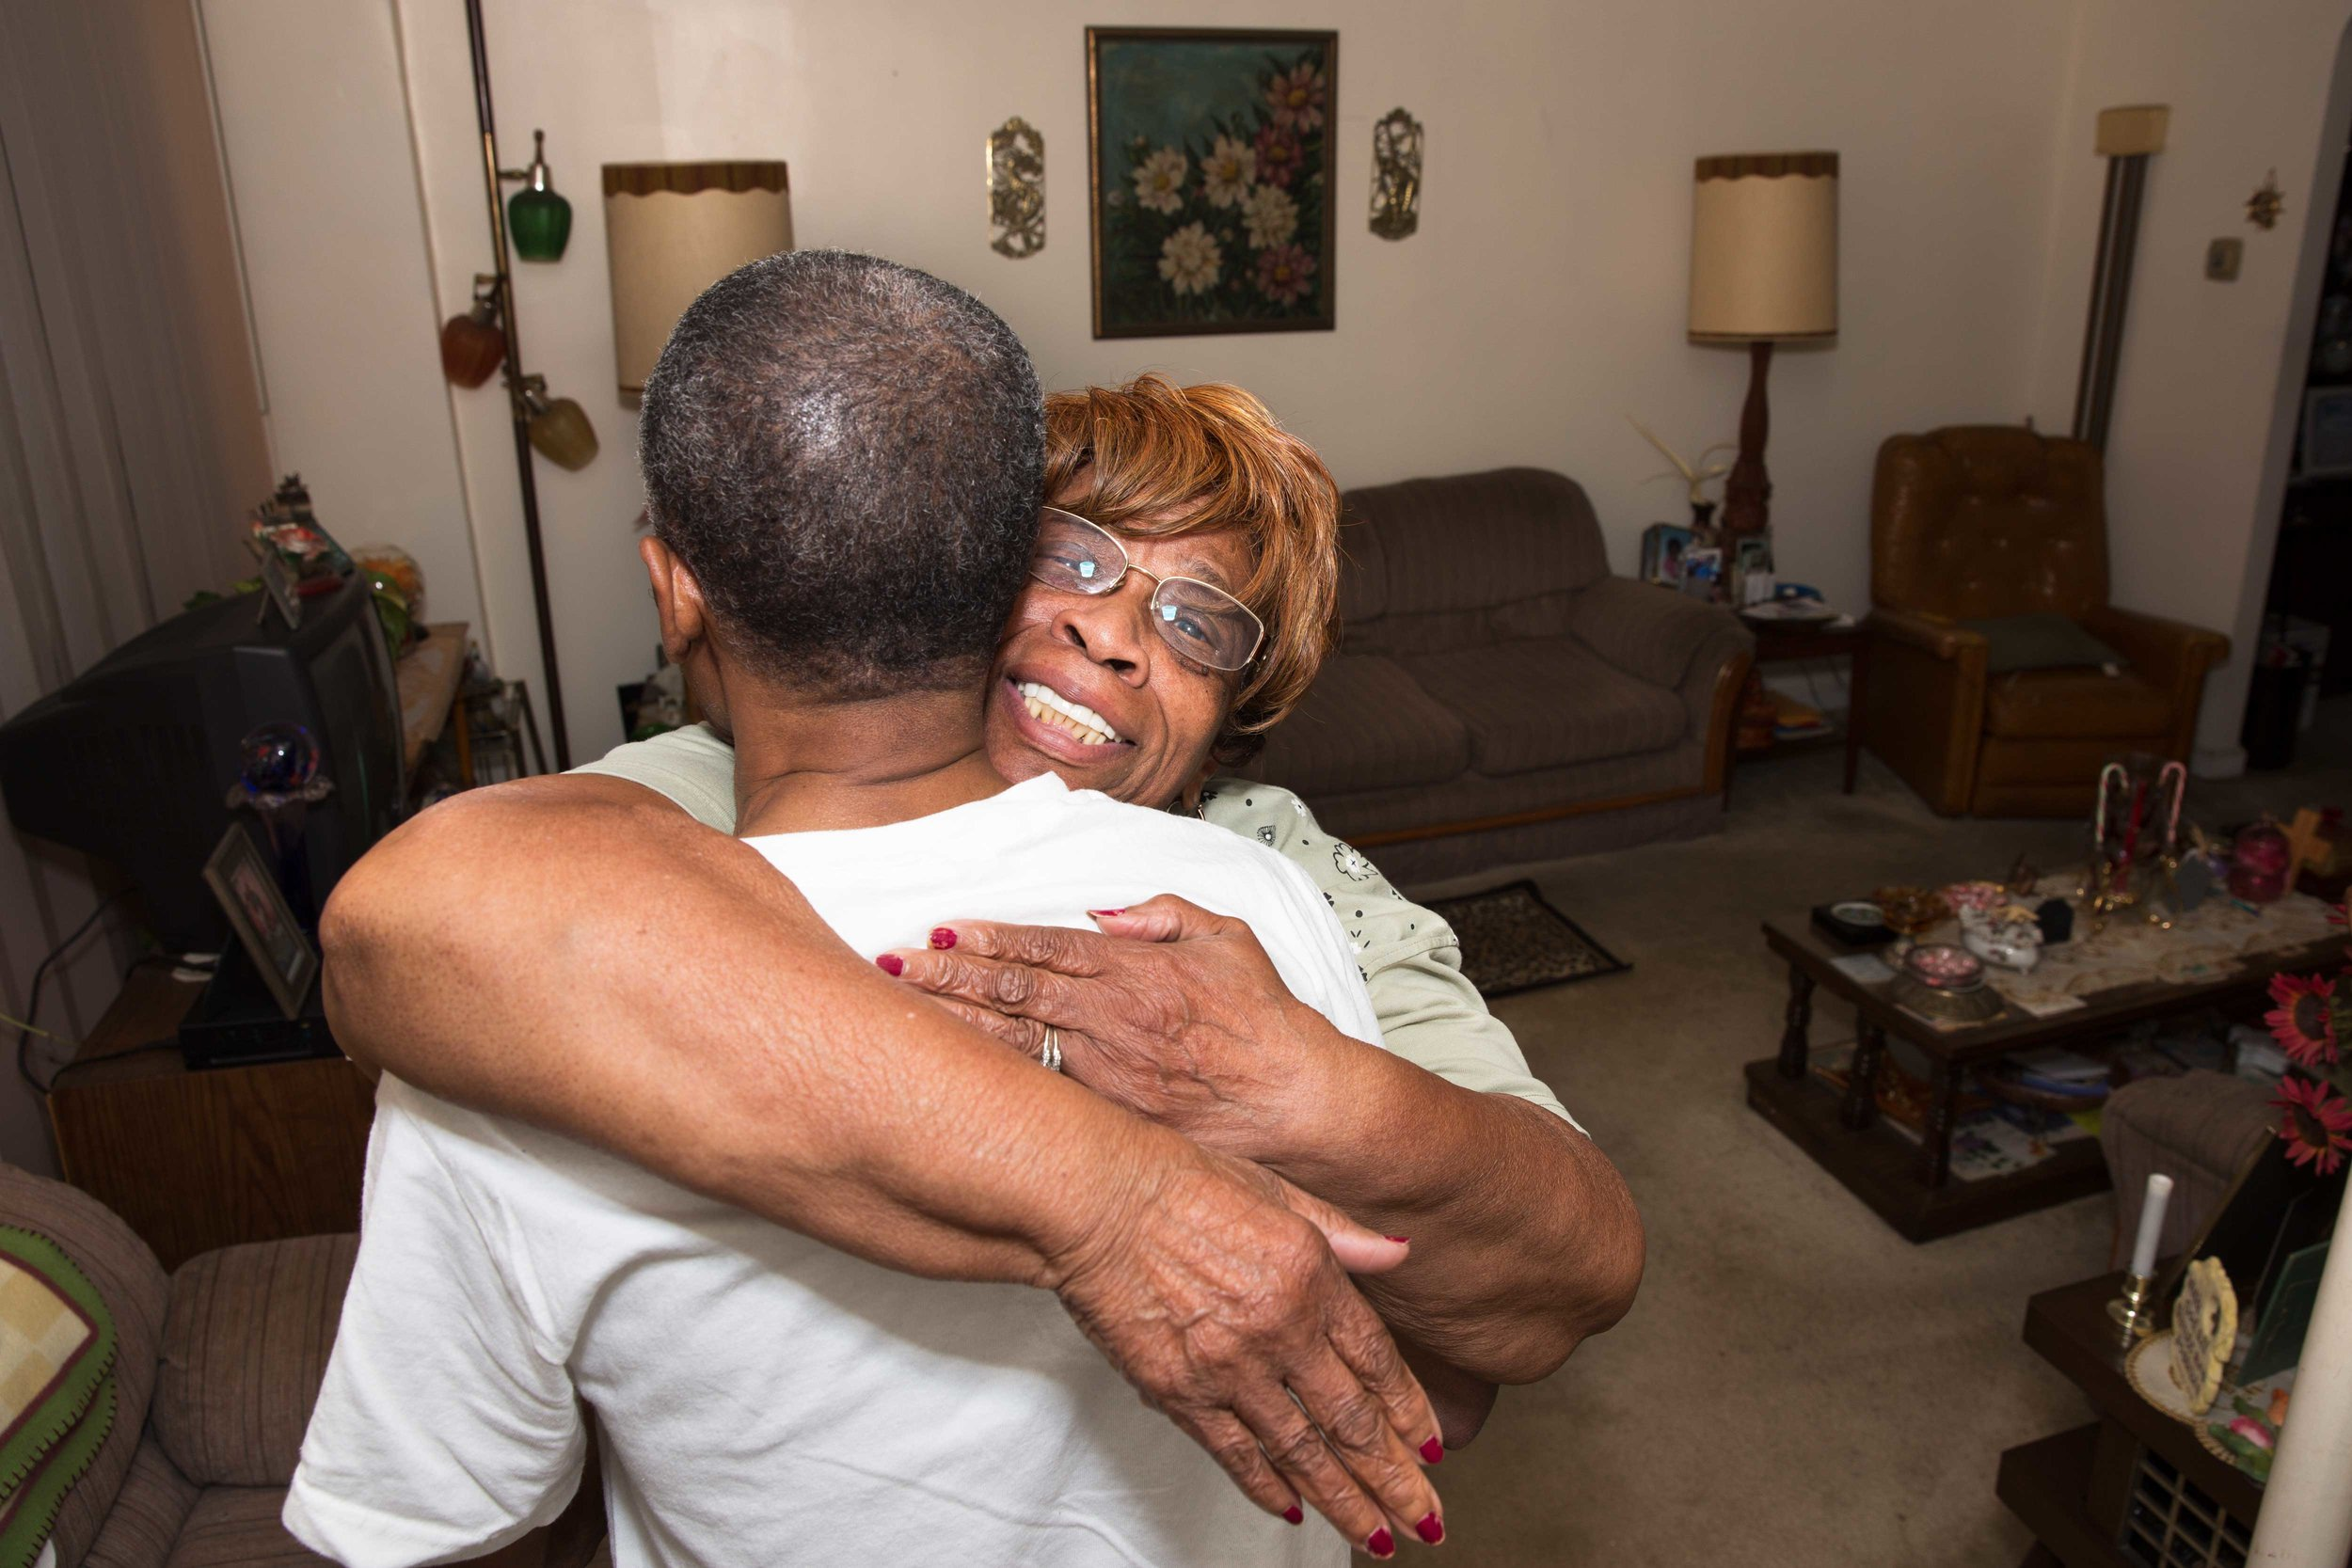 Willie Mae and Ronald reunite in Philadelphia after his release. Willie Mae said that when she found out he was coming home, only a week prior to this moment, she thanked the Lord for answering her prayers. Her greatest fear was she'd pass away and not get to spend time with her son.